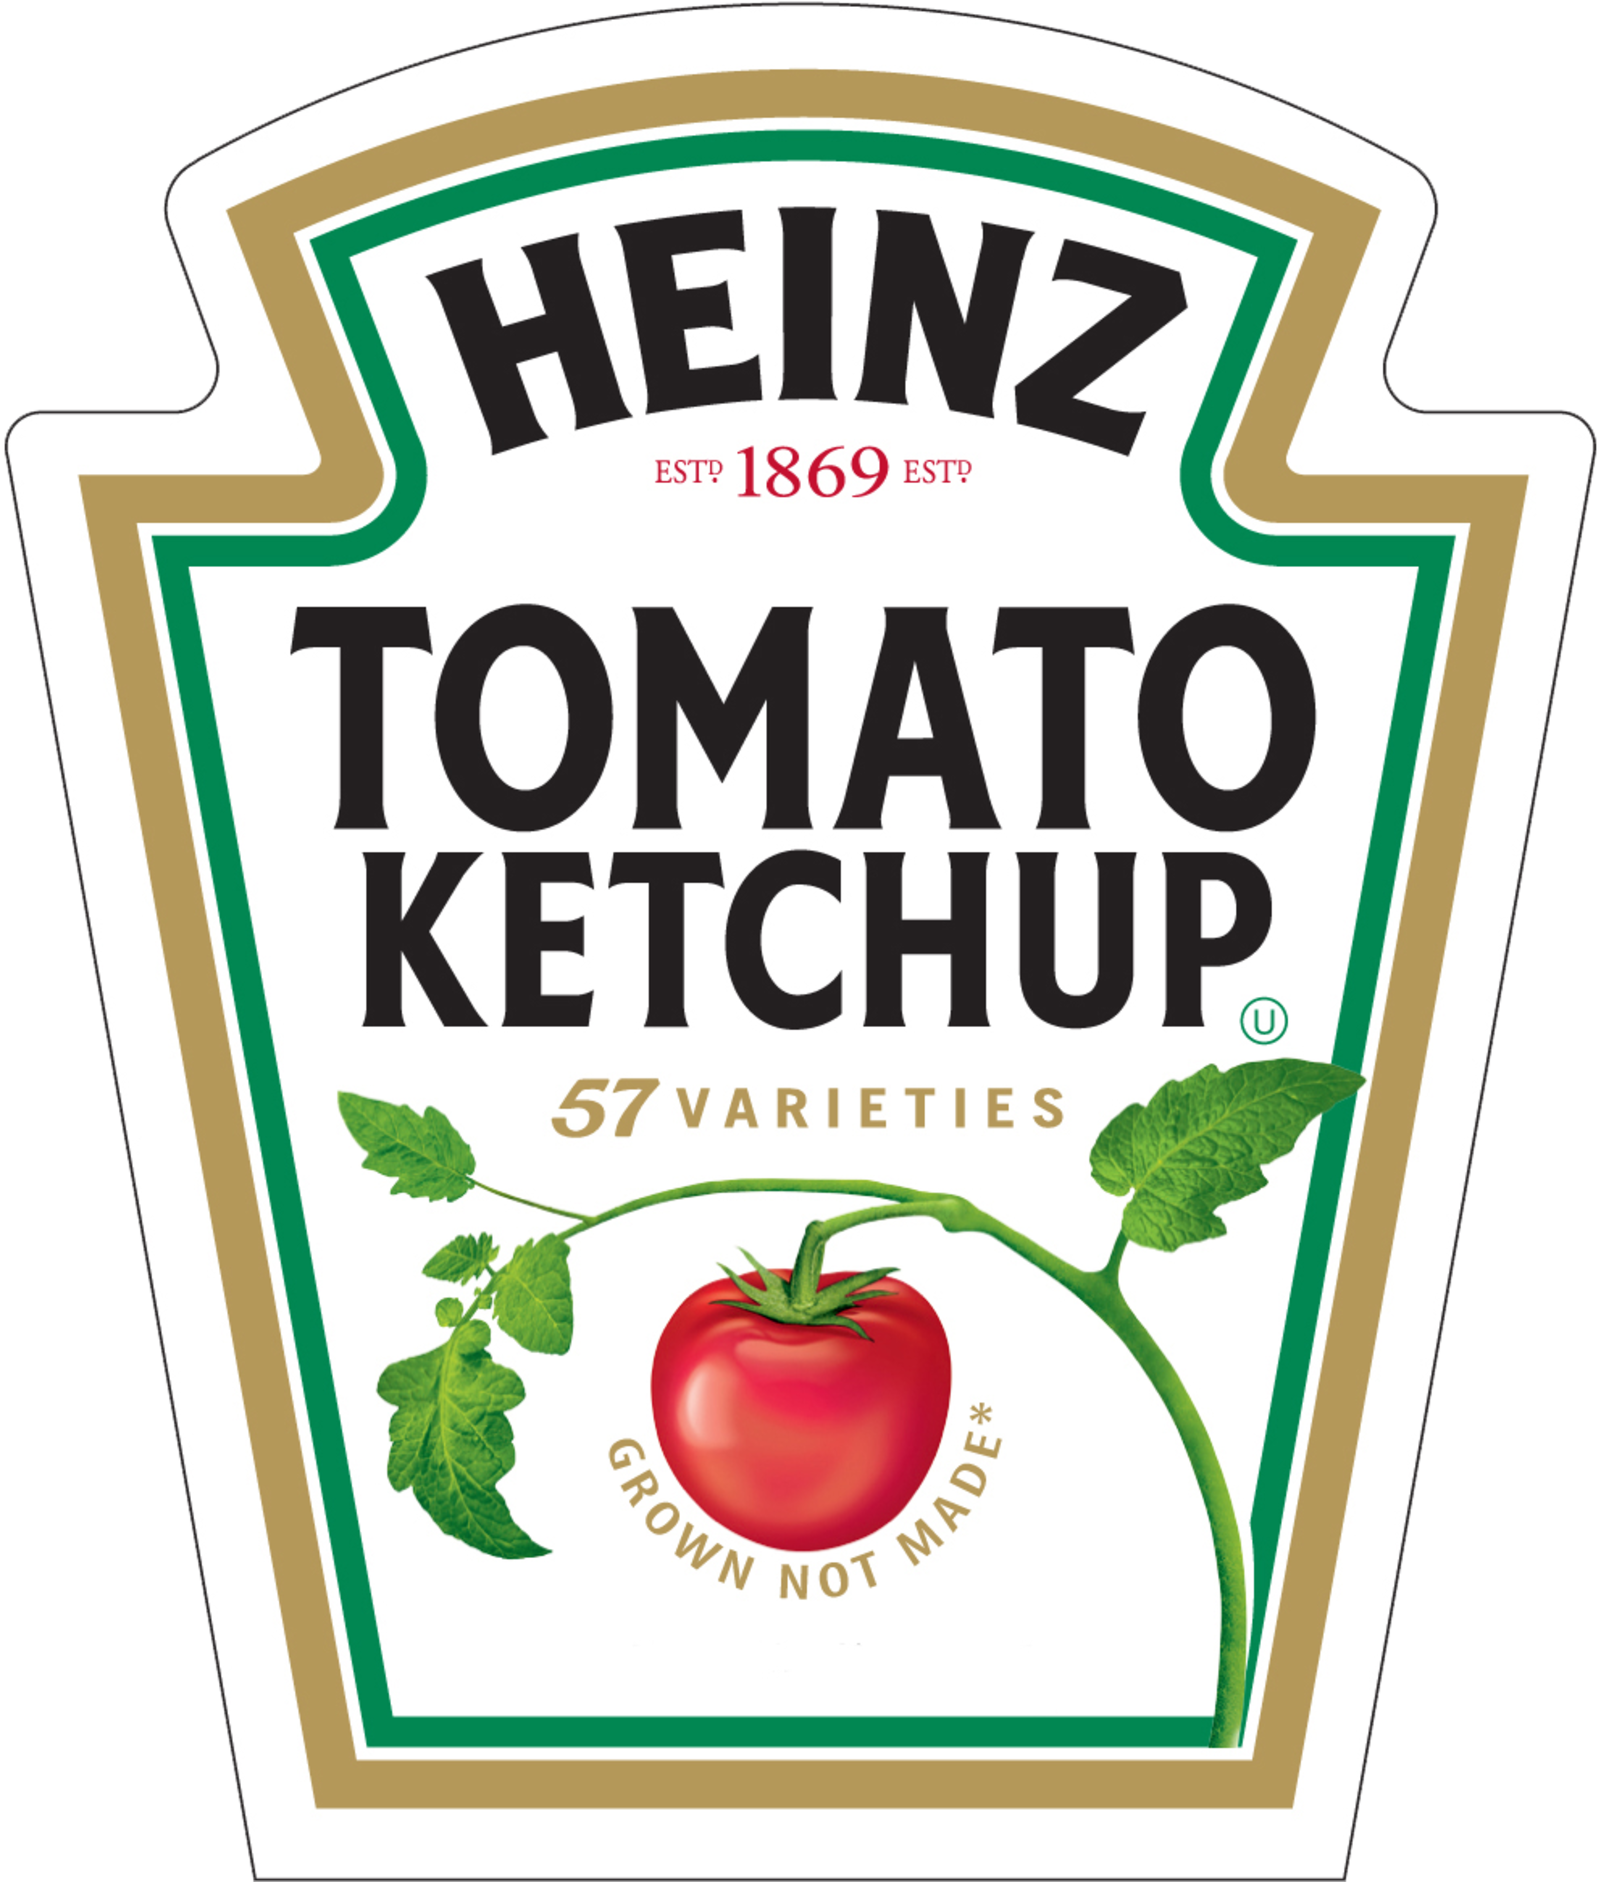 vector free stock The highest quality zack. Heinz ketchup clipart